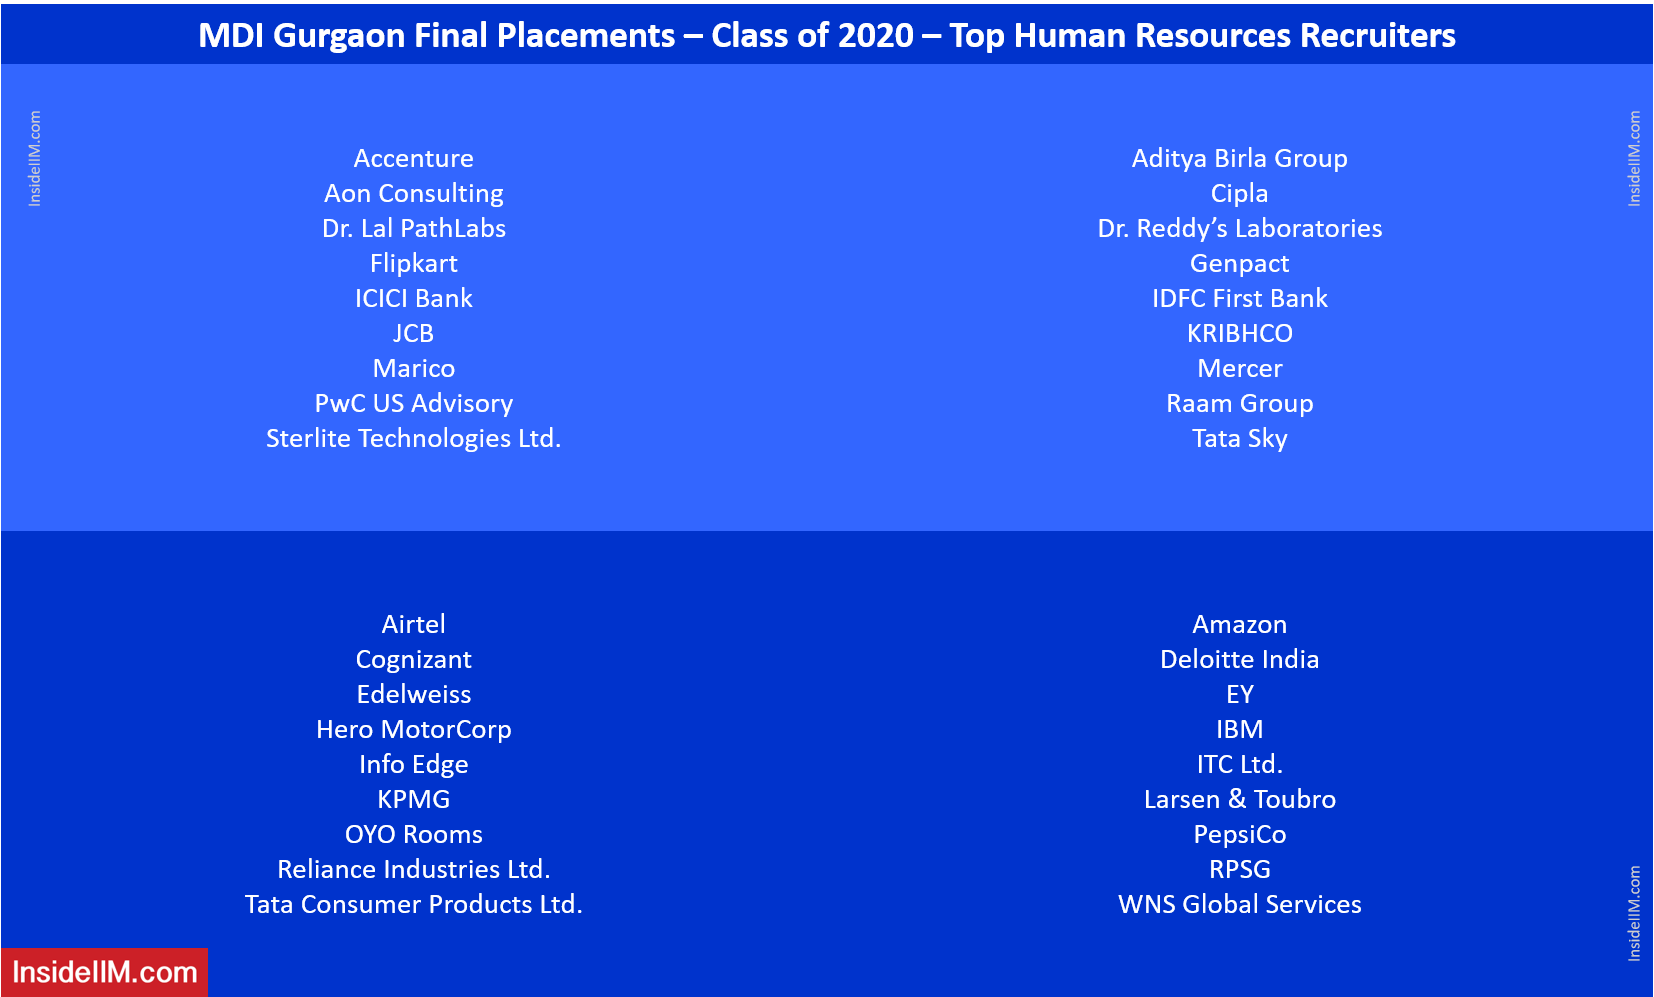 MDI Gurgaon Final Placements 2020 - Top HR Recruiters